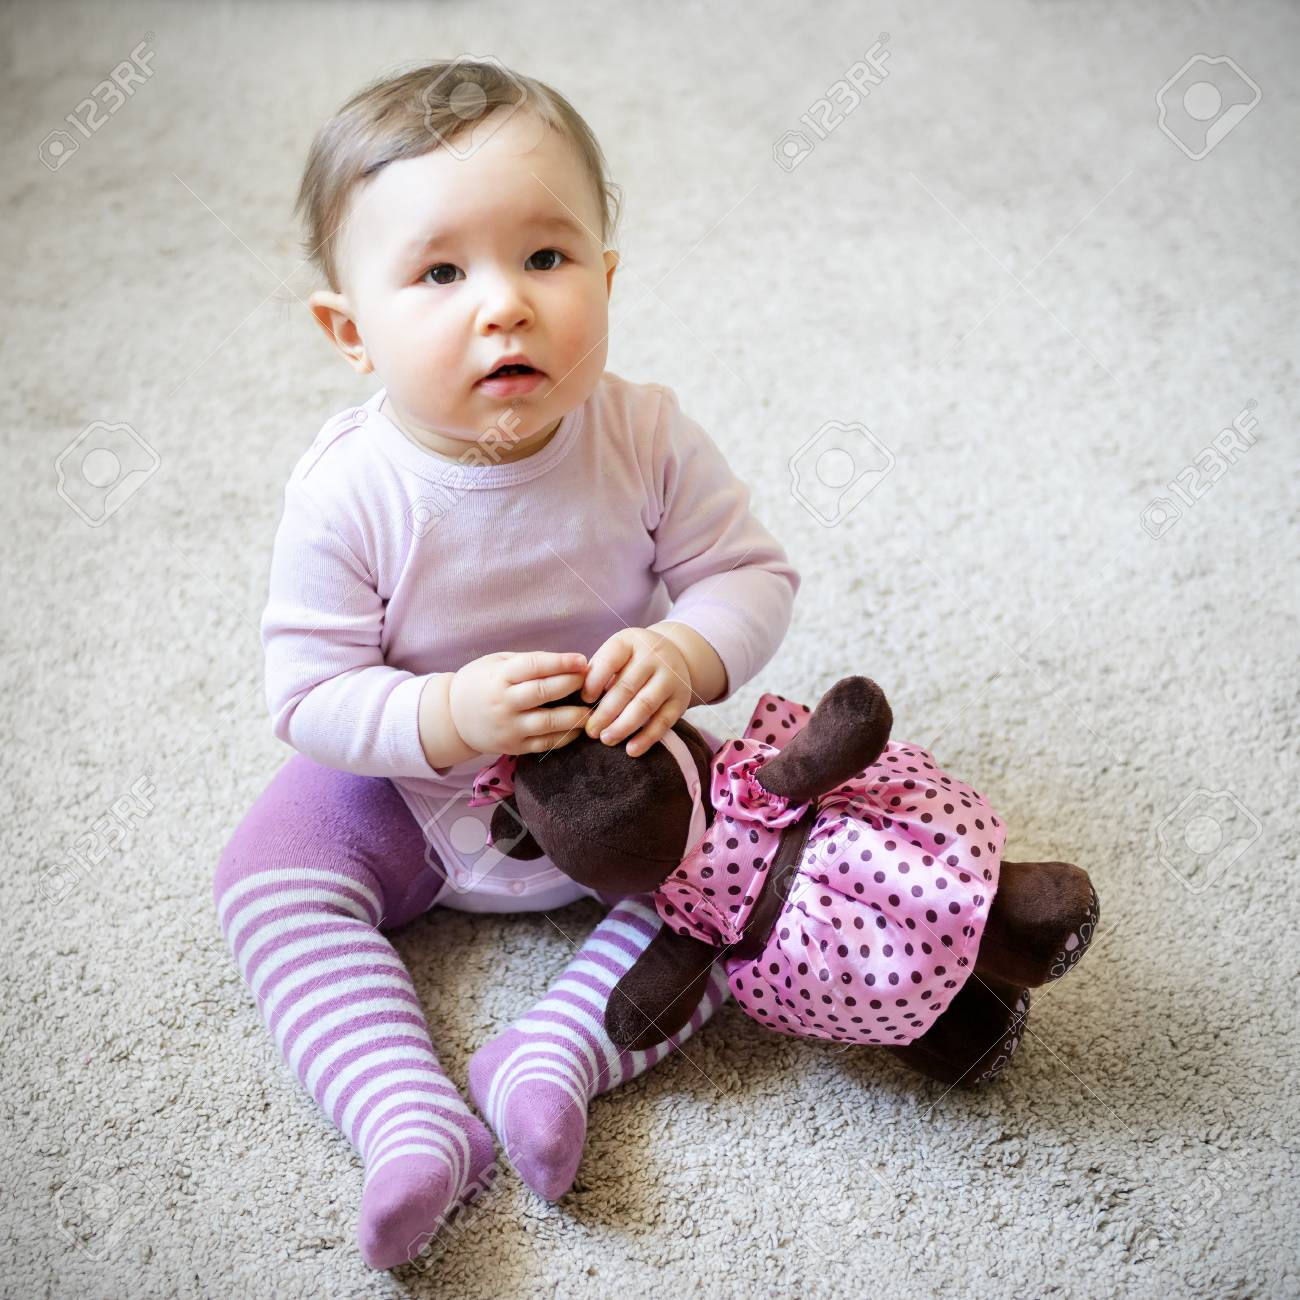 thoughtful and serious nice baby girl sitting on the floor with